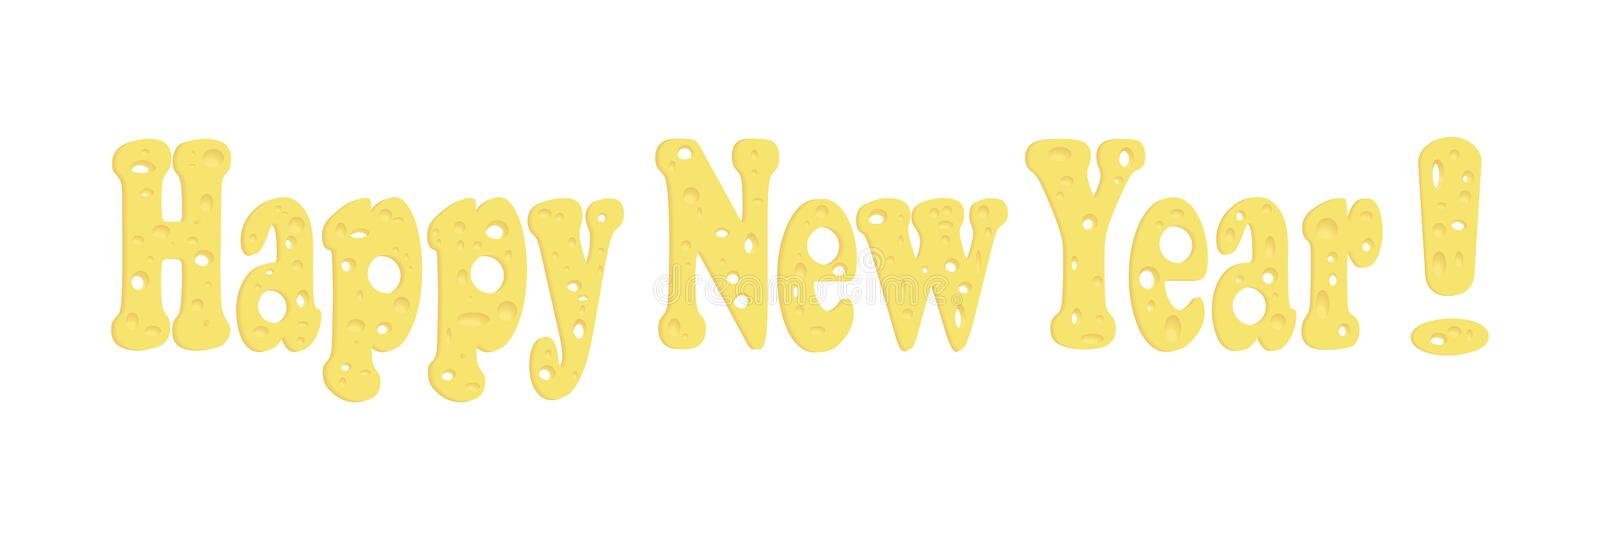 Vector font of cheese. Text: Happy New Year! Themes of the new 2020 year. Dedicated to the rat year. 2020 vision, 2020 year, cheese font, cheese type, font vector illustration